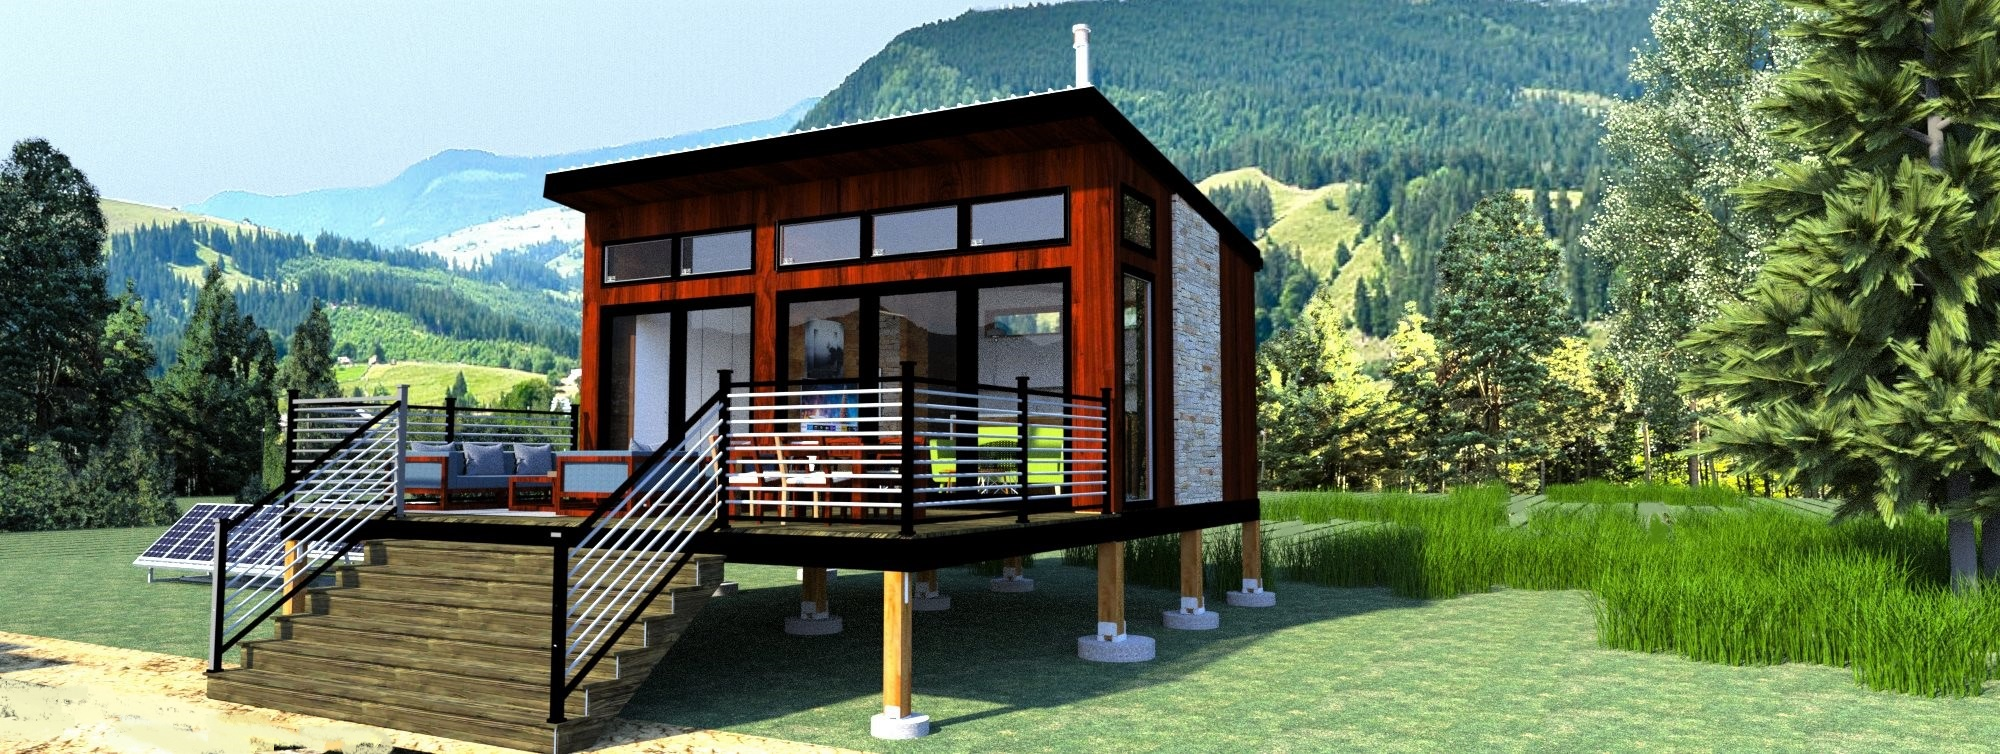 Rendering of the Off-Grid Modern Cabin. View from front showing the deck, front windows, and scenic mountain view behind the cabin in the distance.